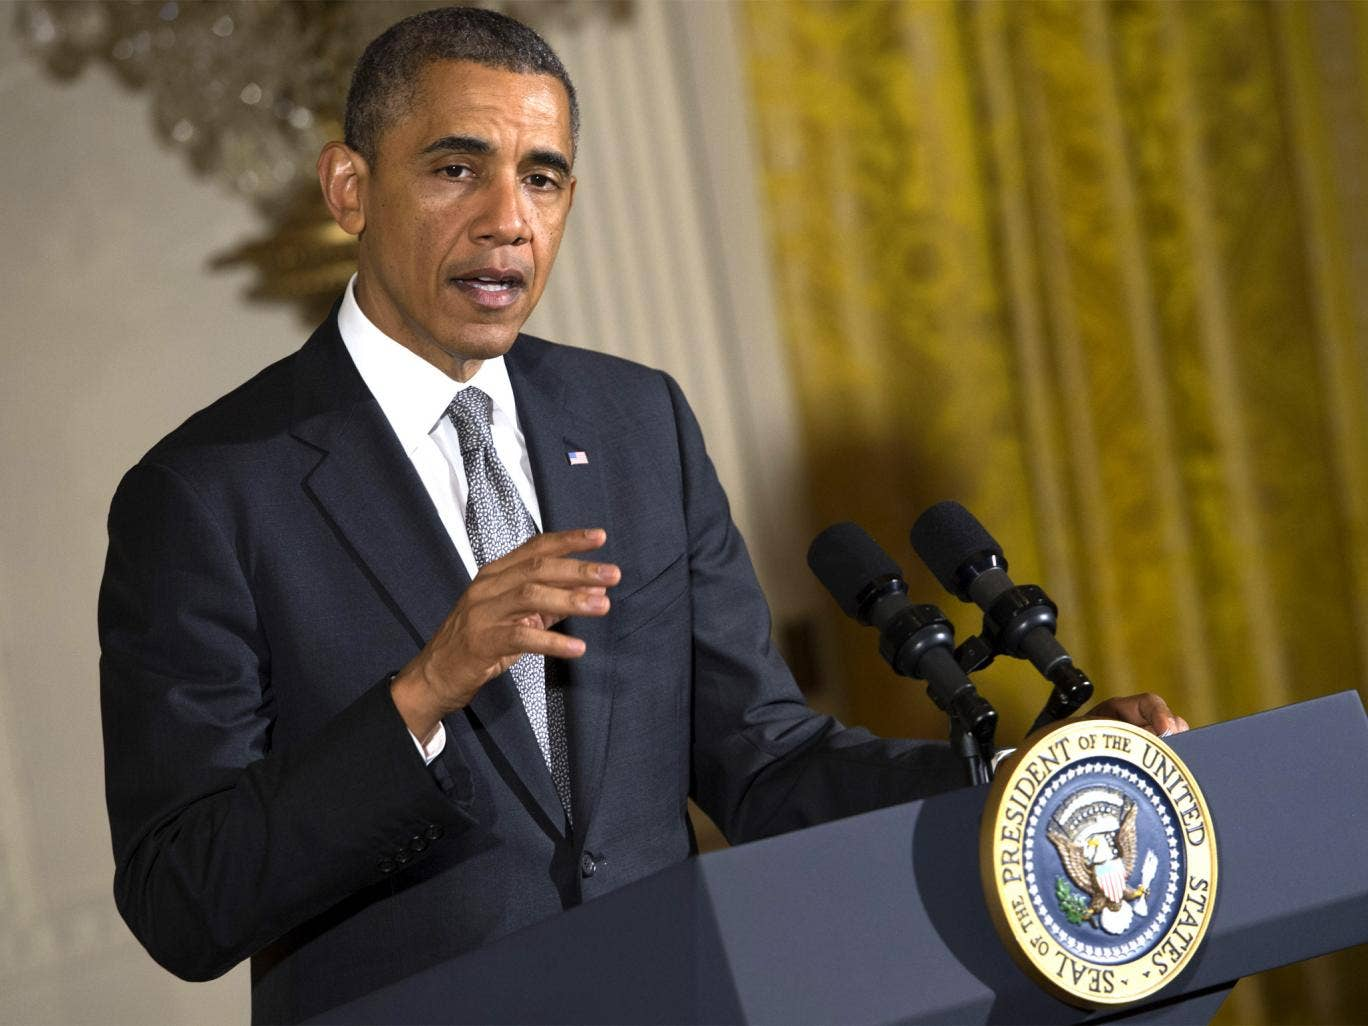 President Obama will give interviews to publicise the findings